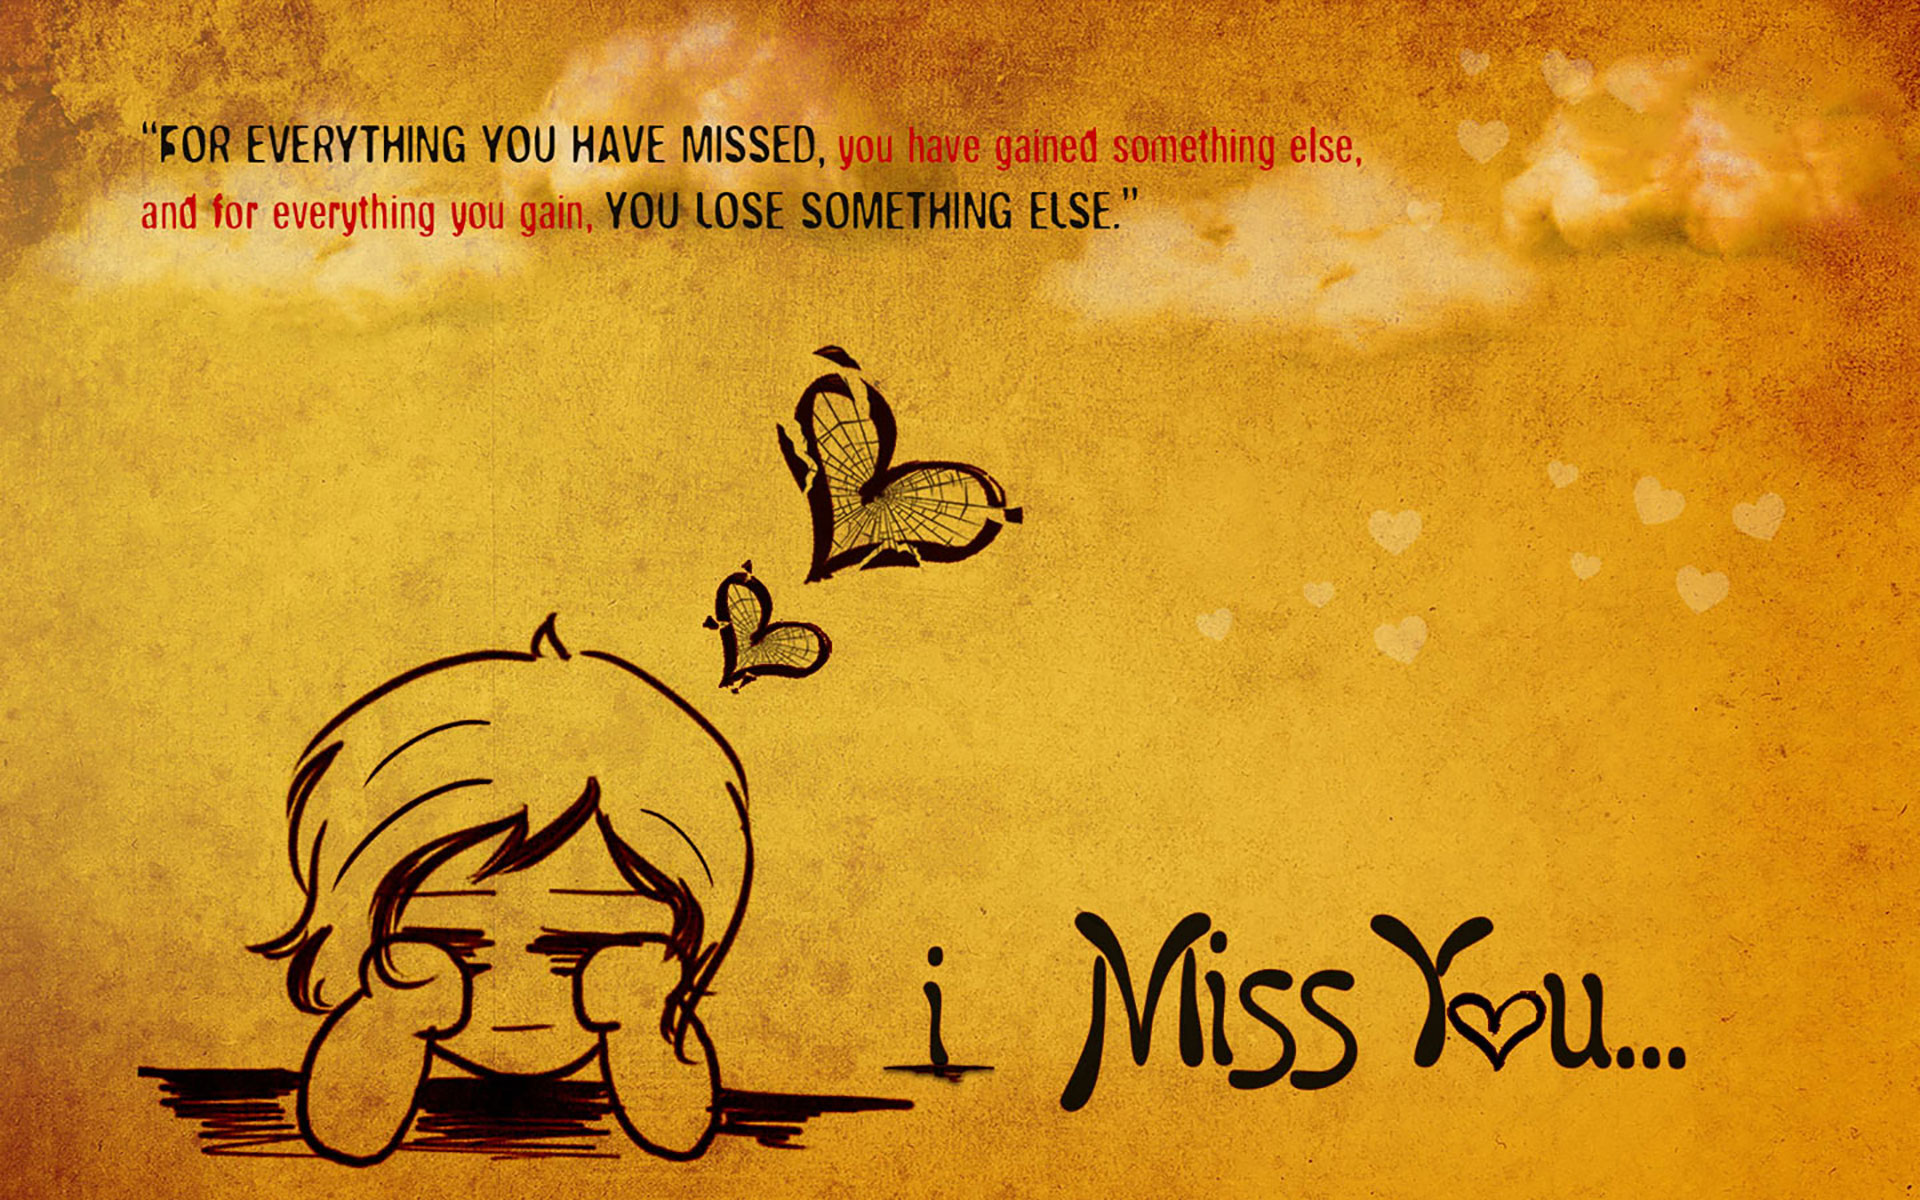 HD I Miss You Wallpaper For Him Or Her